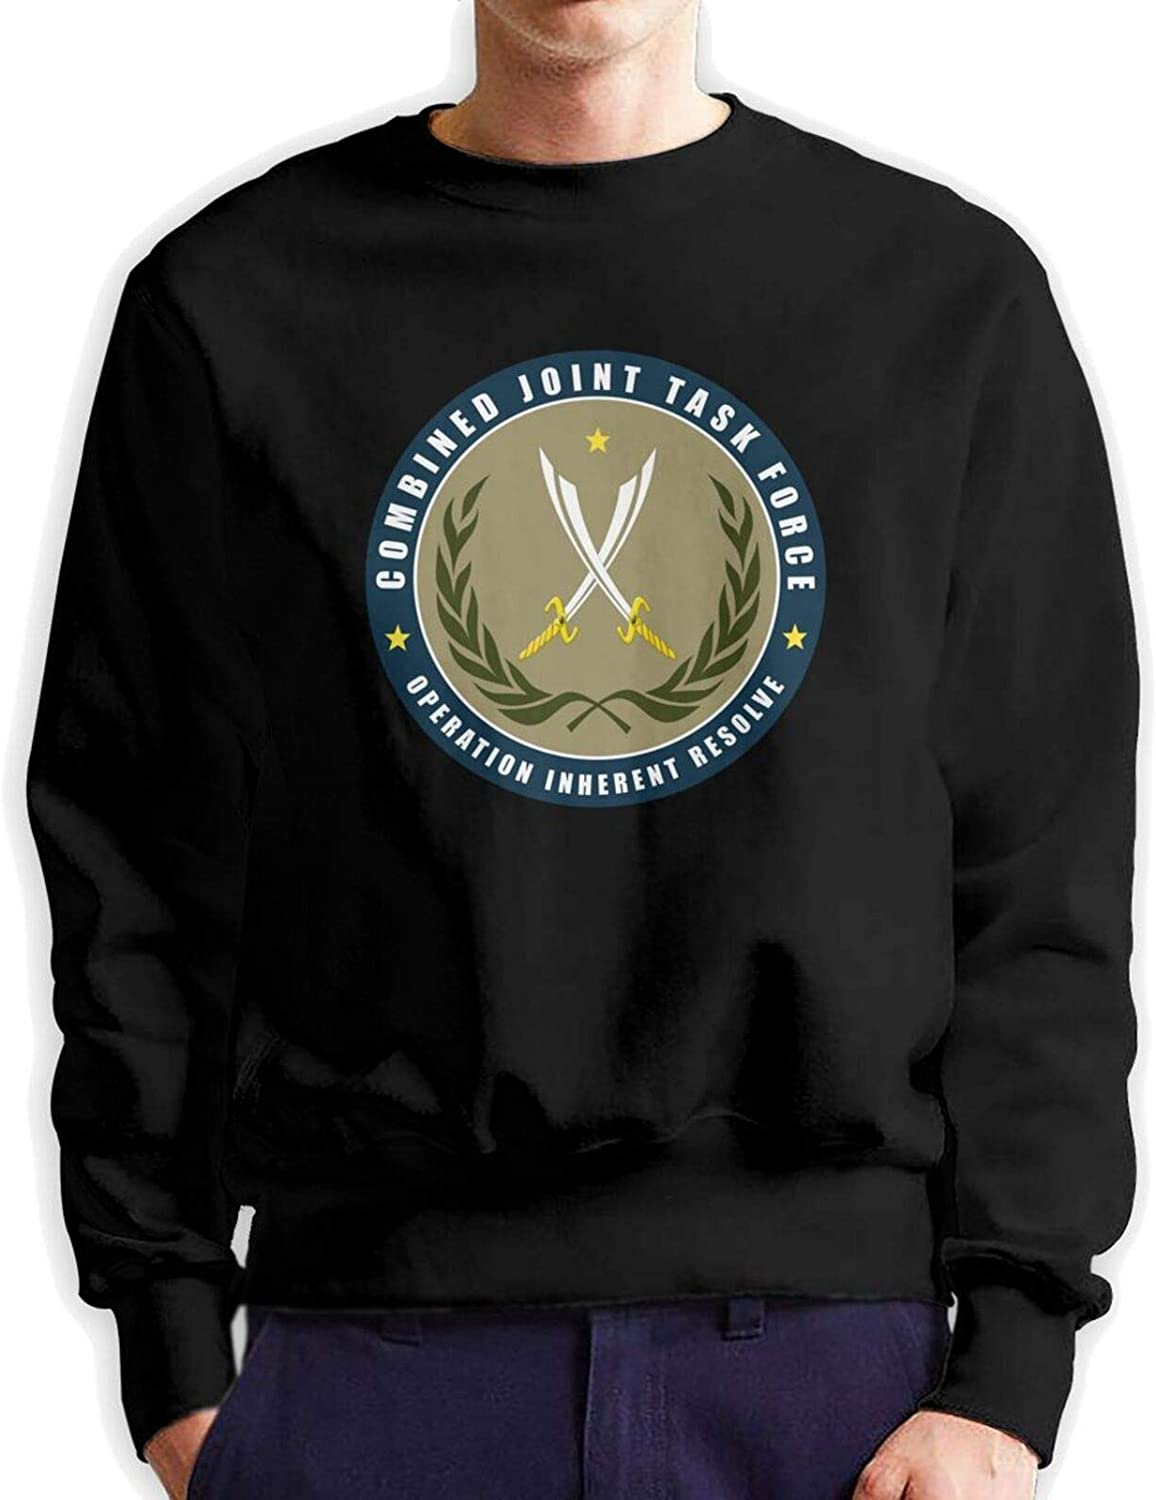 Cheap sale Joint Task Force Operation Inherent Men'S Vintag Resolve Low price Classic